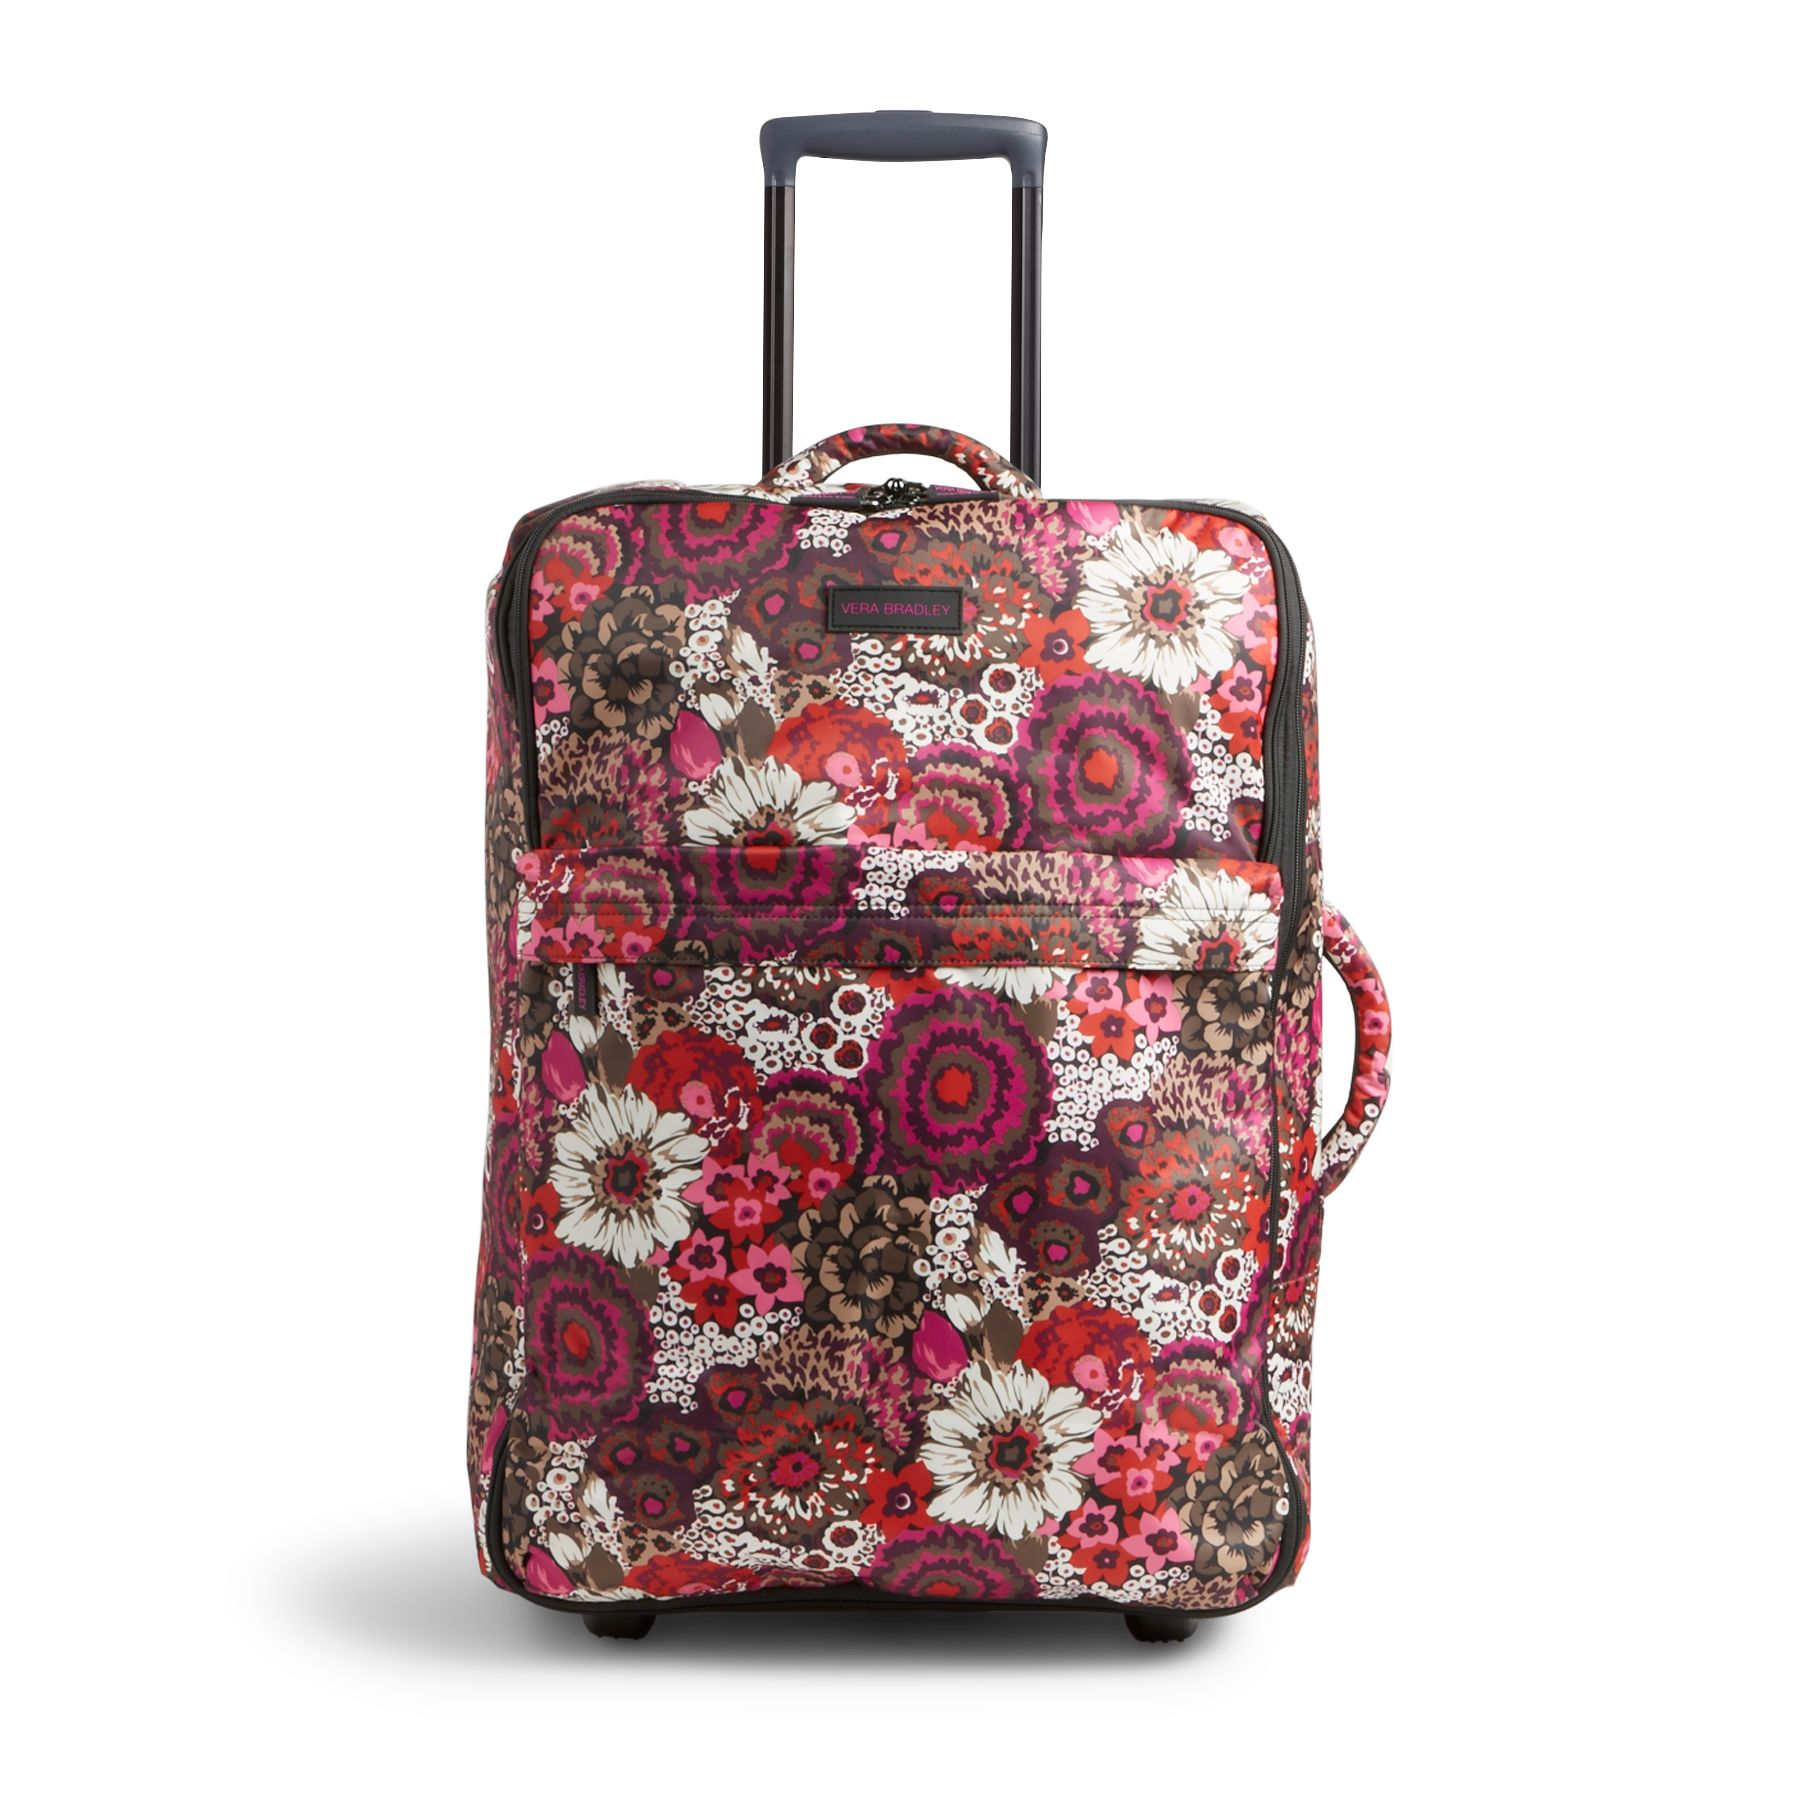 Vera Bradley Large Foldable Roller Luggage in Rosewood